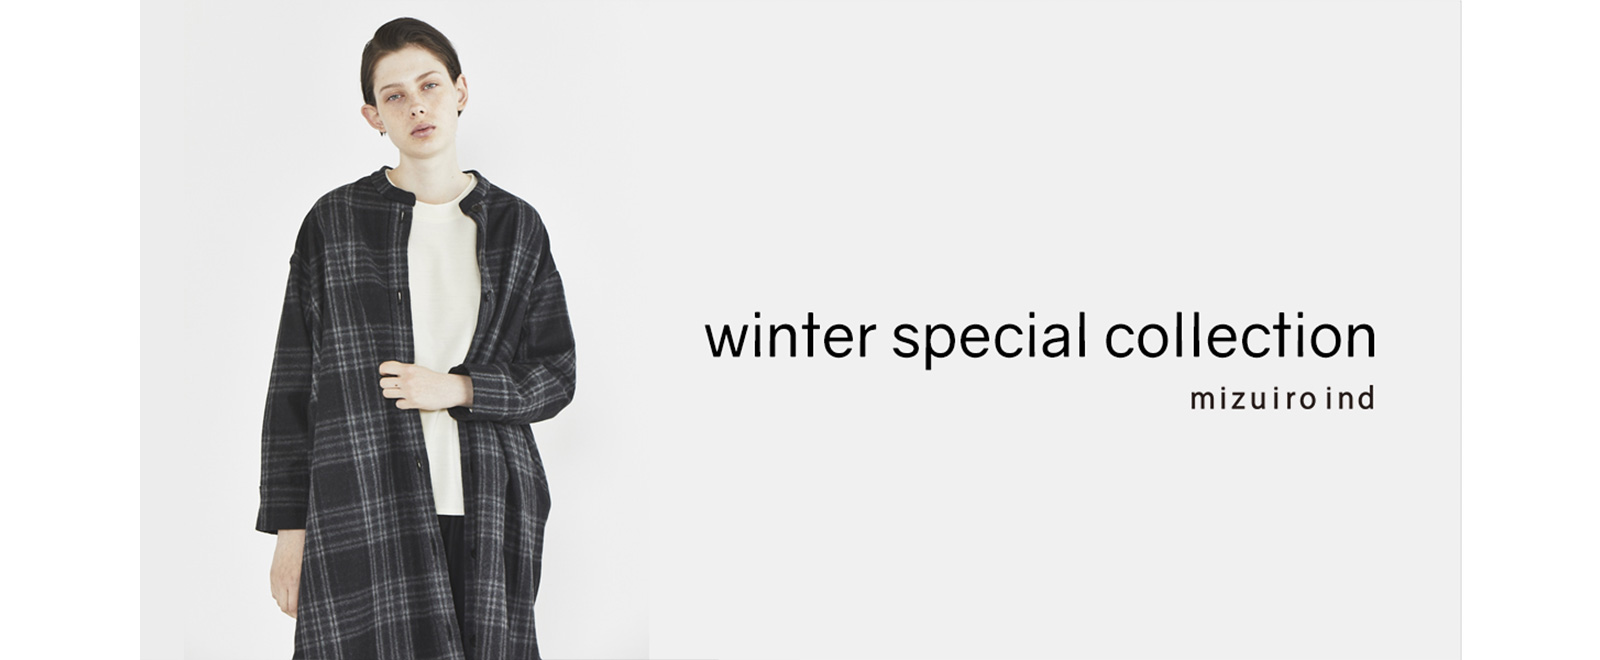 WINTER SPECIAL COLLECTION